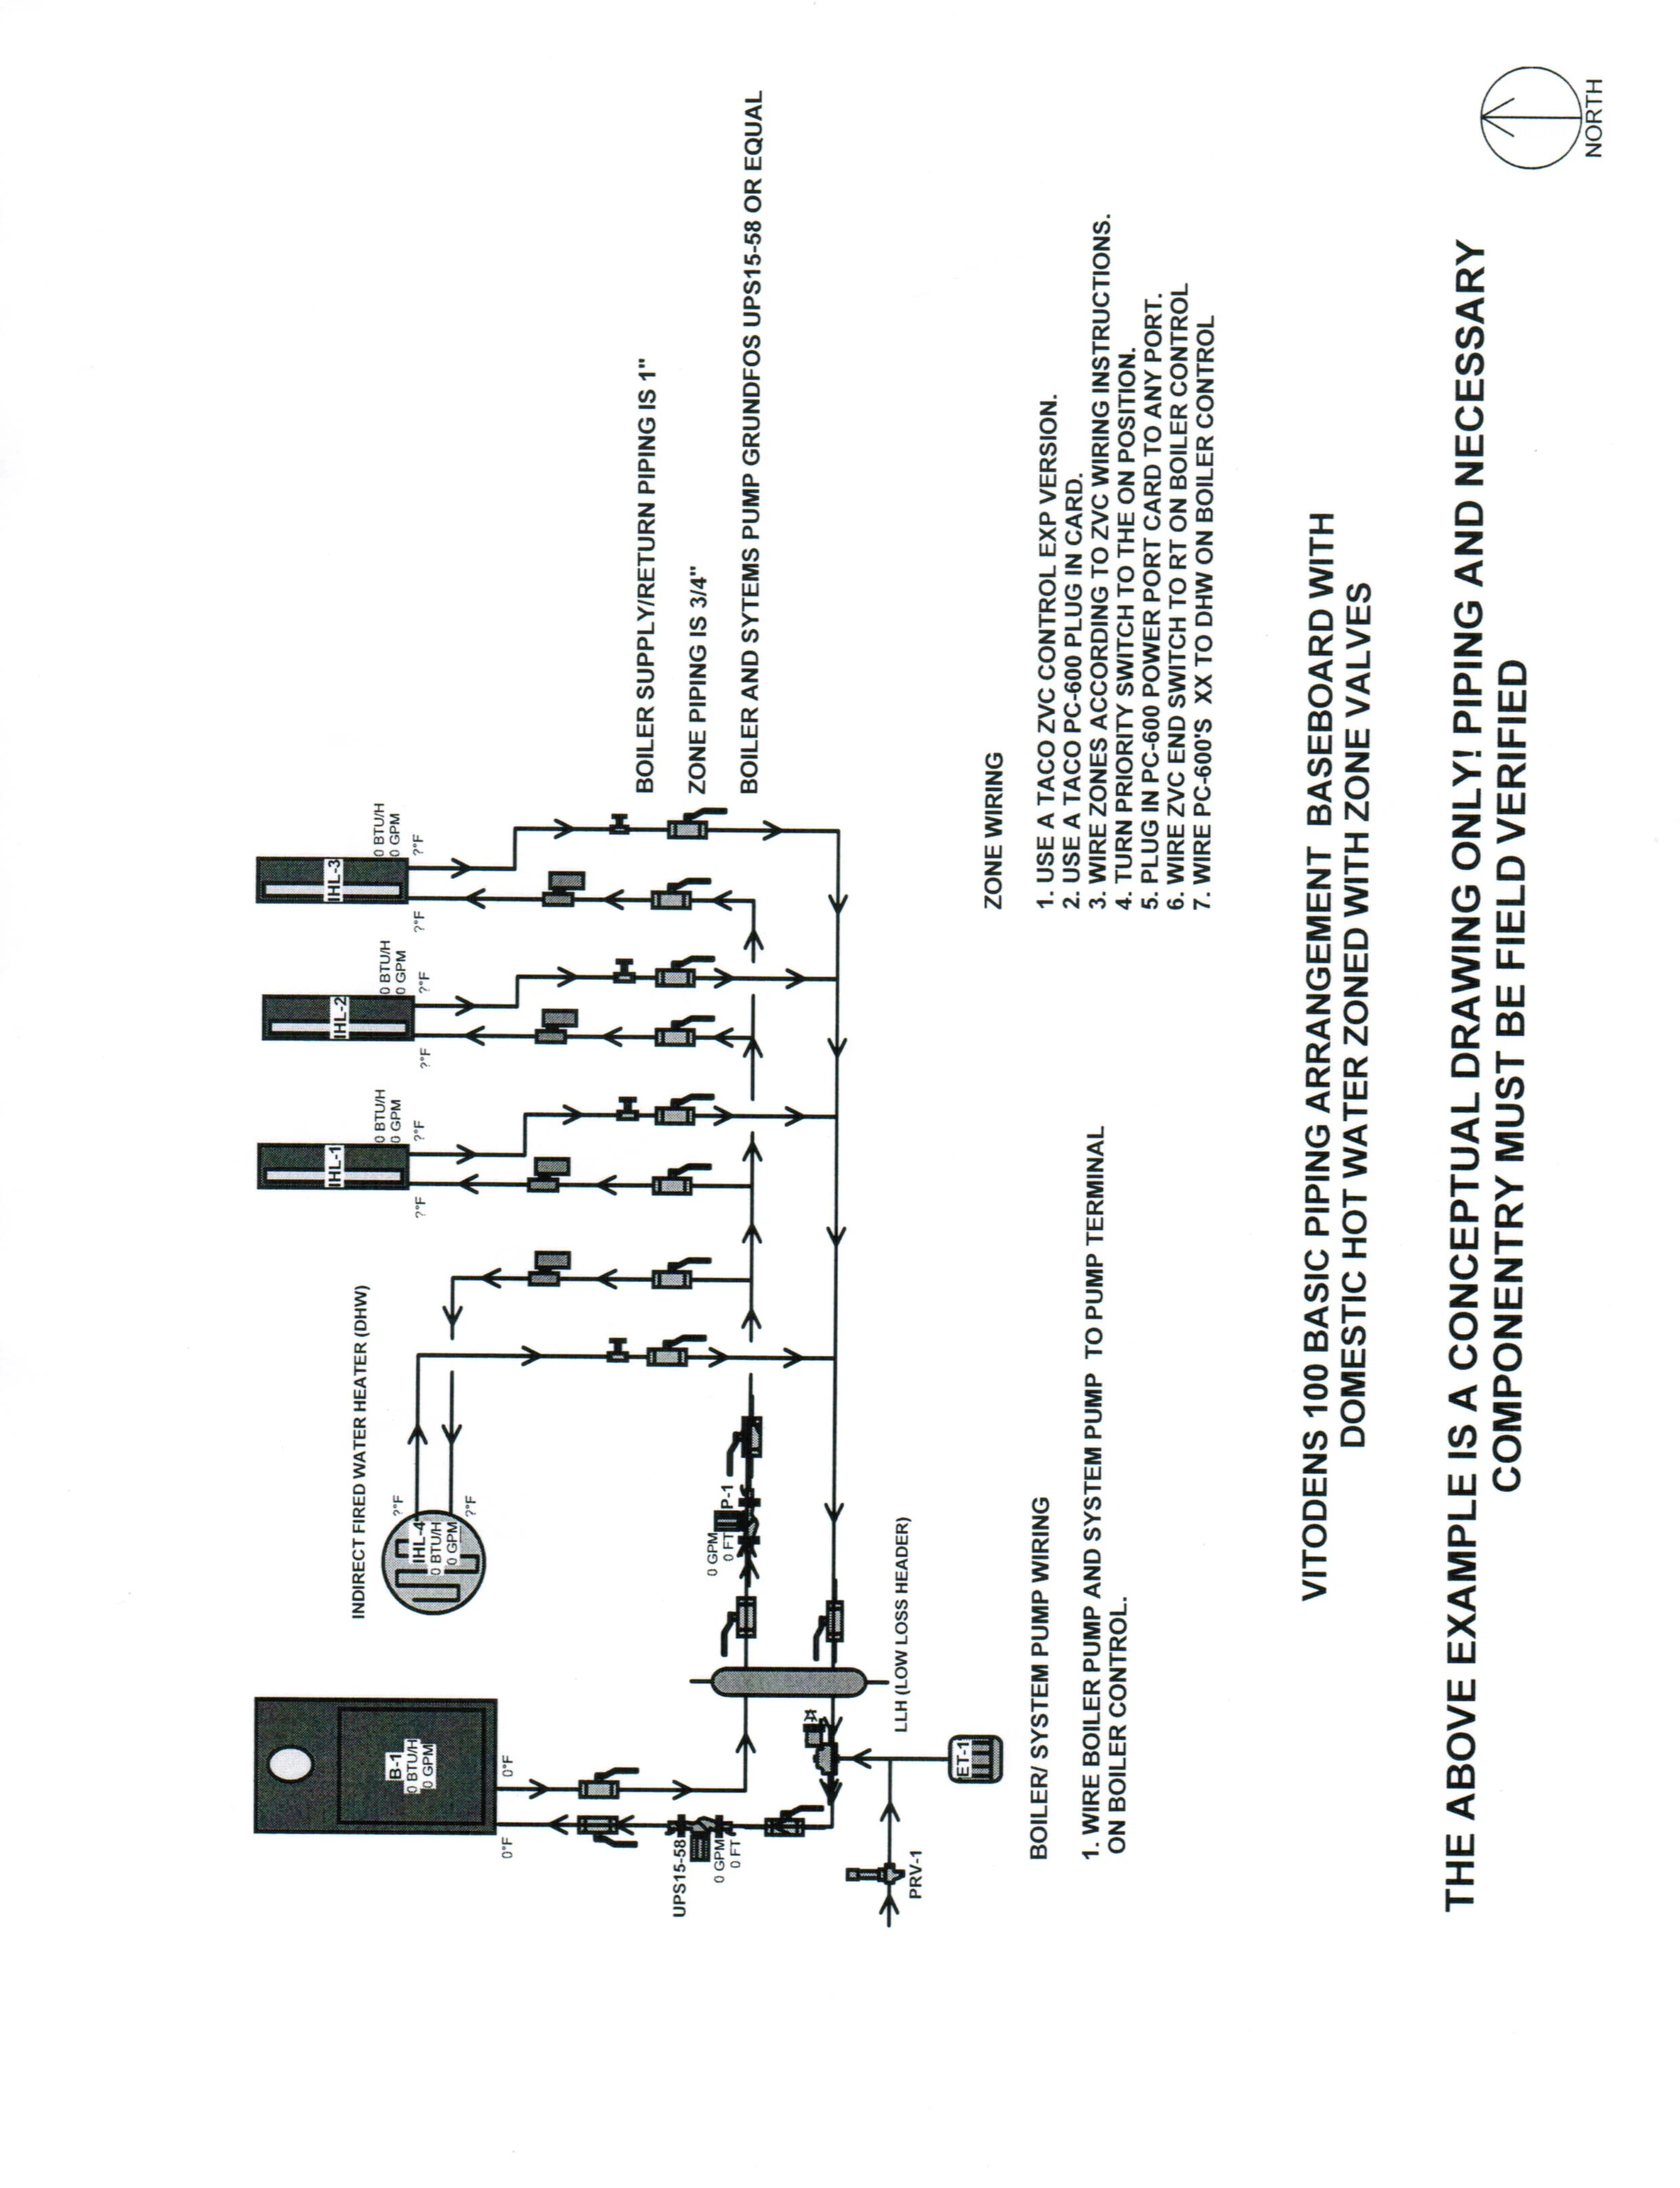 Electric Baseboard Heater Wiring Diagram